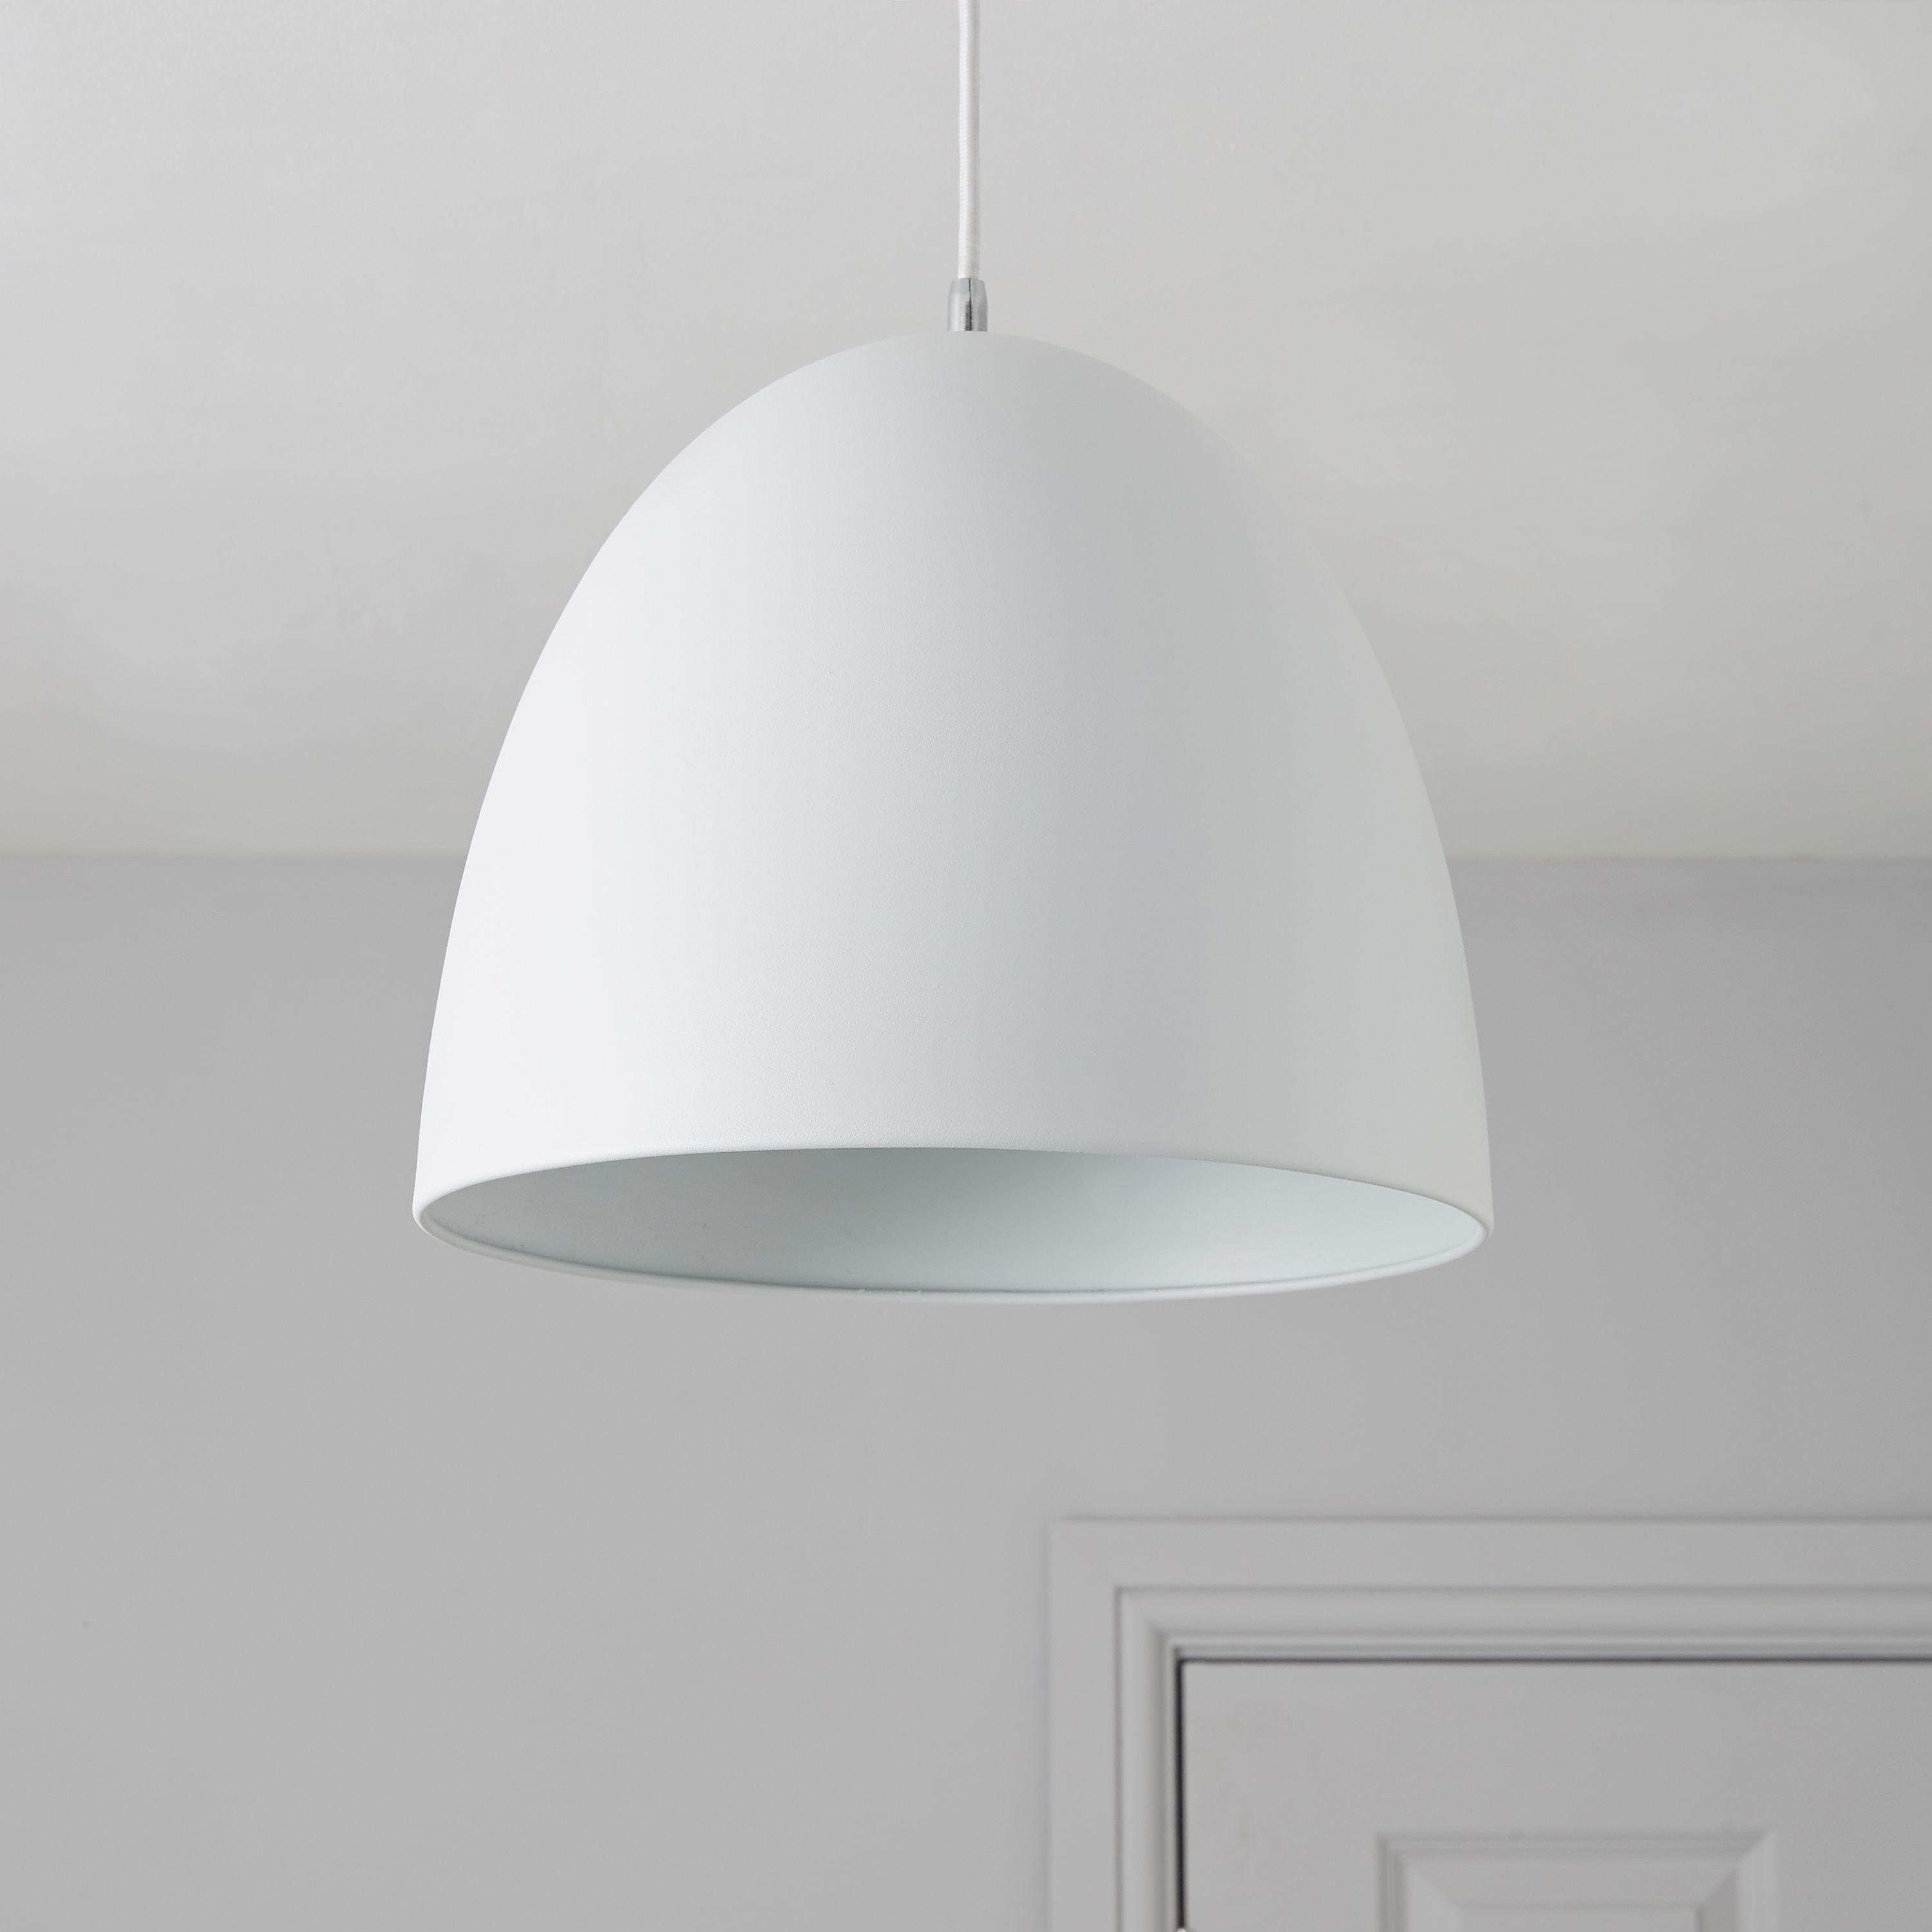 Bulyon Dome White Pendant Ceiling Light - Departments - Diy